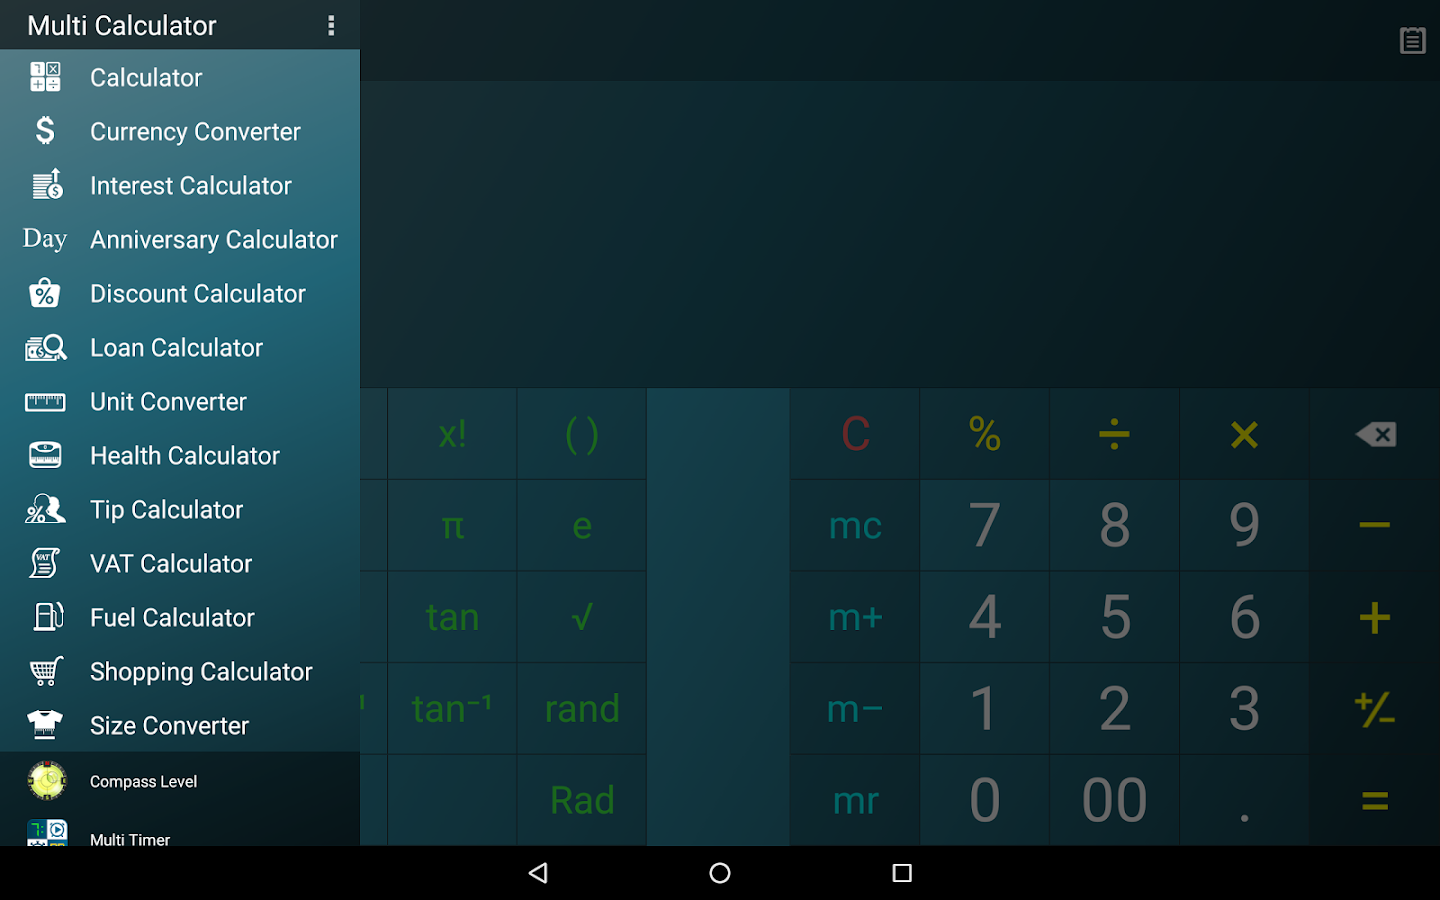 Multi Calculator Screenshot 8